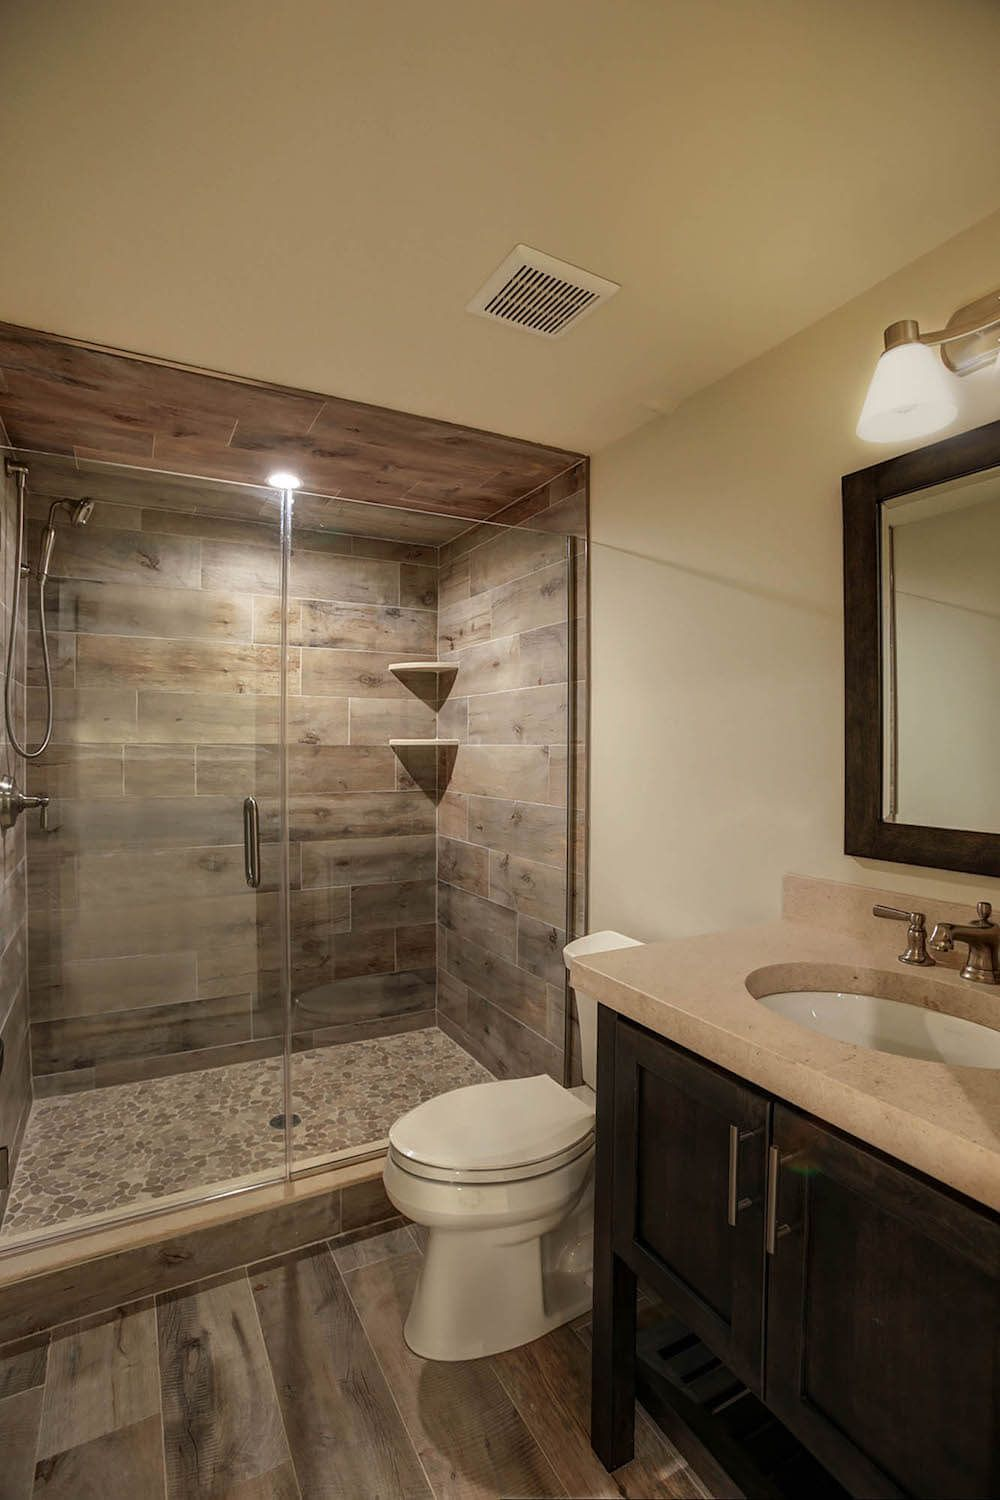 How Much Does It Cost To Finish A Basement Small Bathroom Redo Bathroom Remodel Pictures Basement Bathroom Remodeling